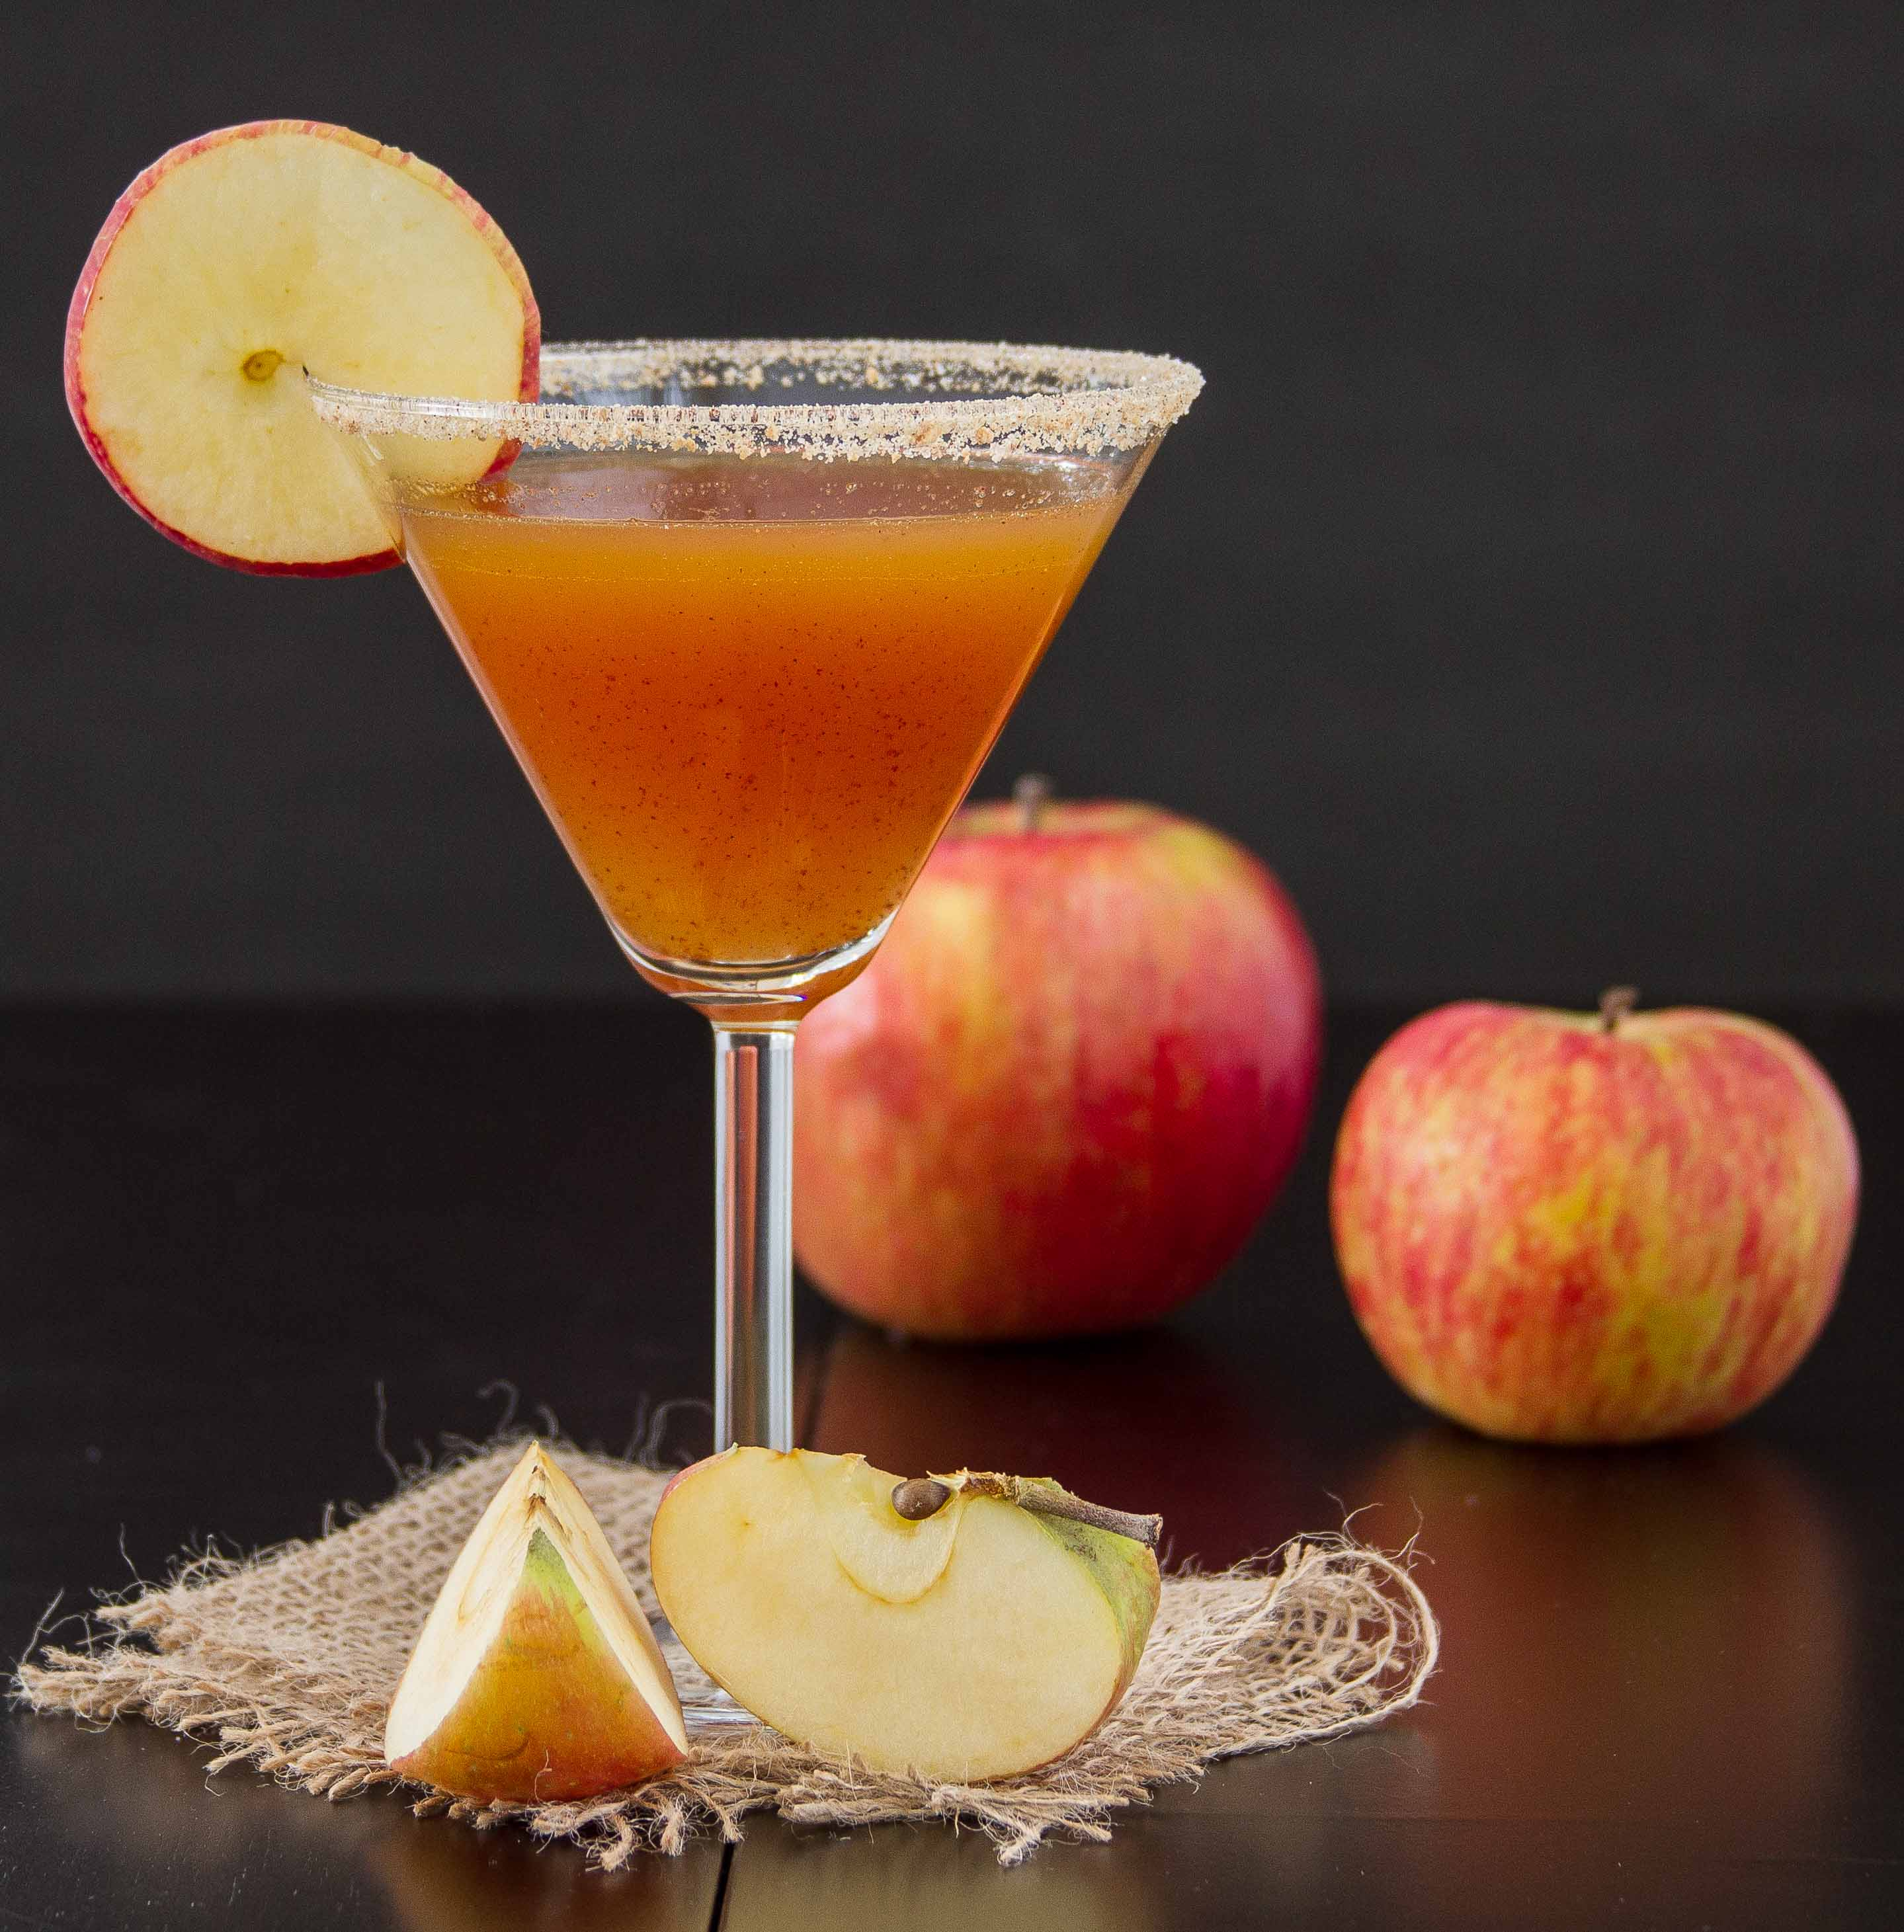 How Do You Make The Drink Apple Pie